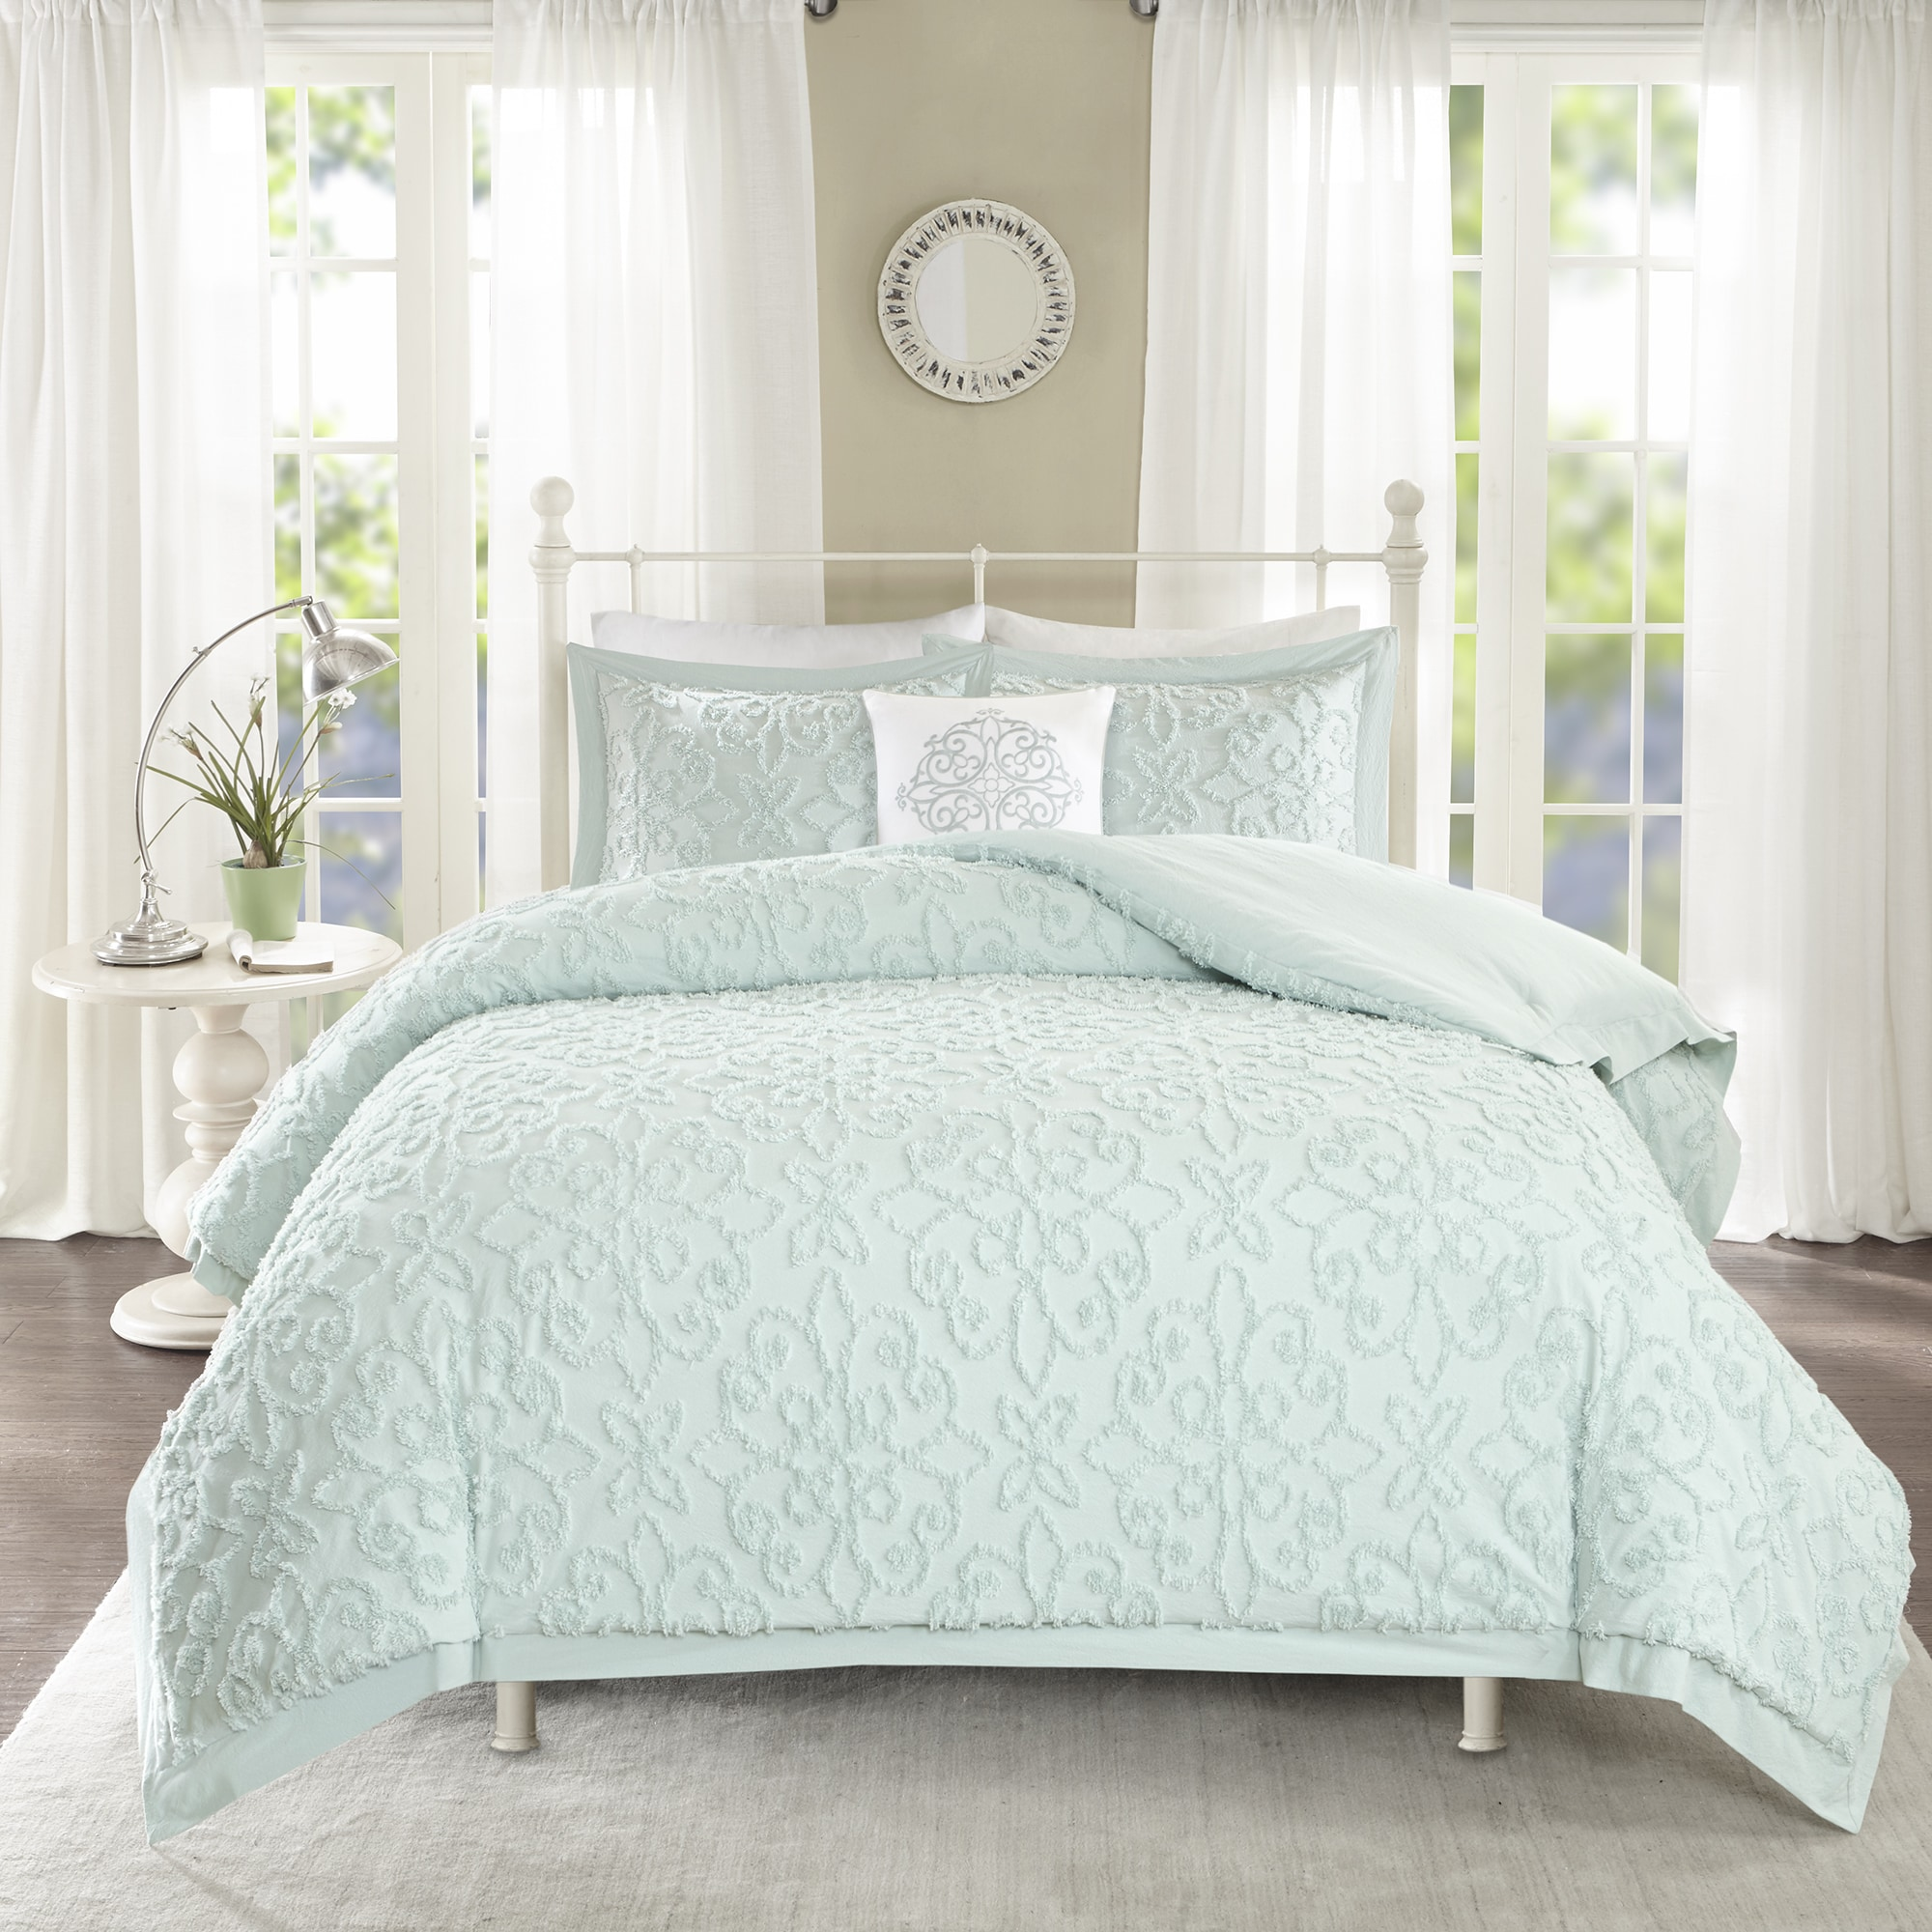 floor size simple attractive where sets wall and uk with cover cotton white organic blue can find duvet i pintuck espan cheap art myorganicsleep bedroom of comforter king west baby paisley tufted for off covers us queen elm wooden set taupe duvets bedding buy design full